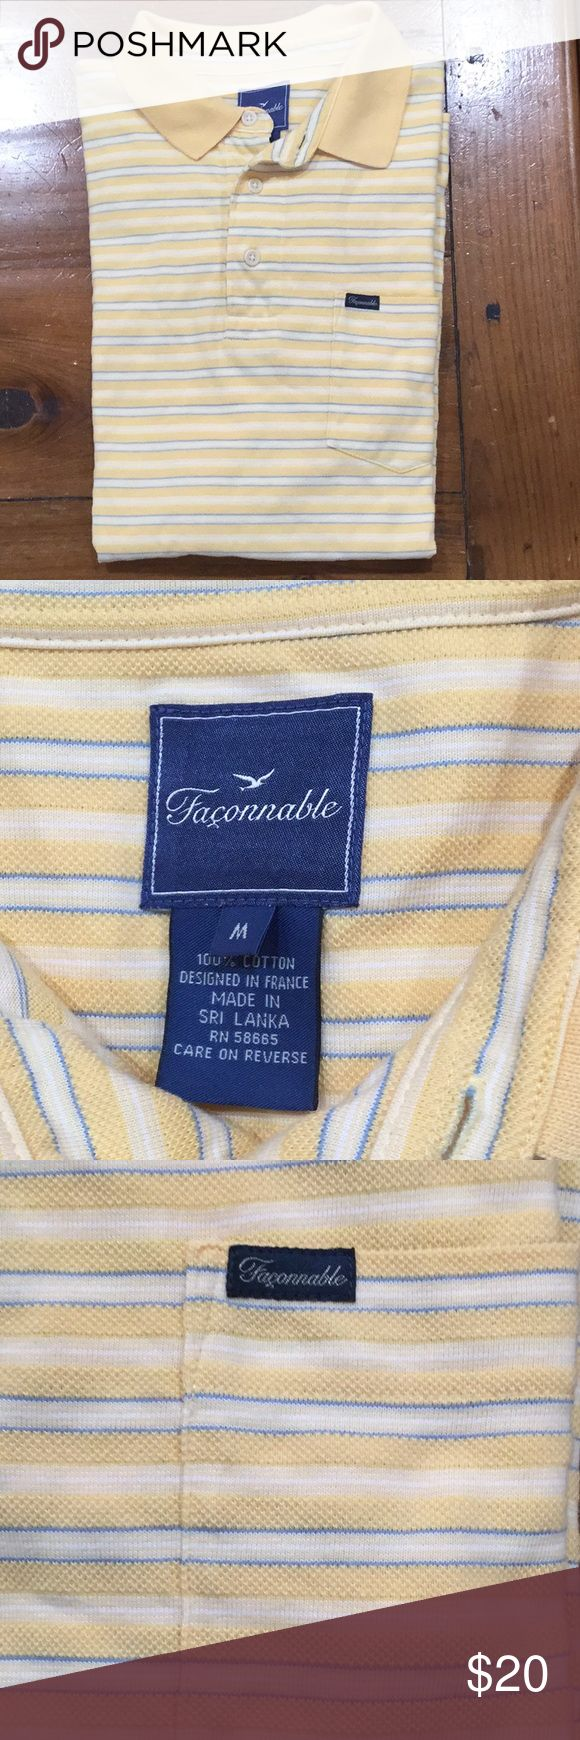 Faconnable Polo Shirt sz M Great condition - Faconnable Polo in yellow stripes. 100% cotton pique.  Short sleeves with slits on both sides. Faconnable Shirts Polos